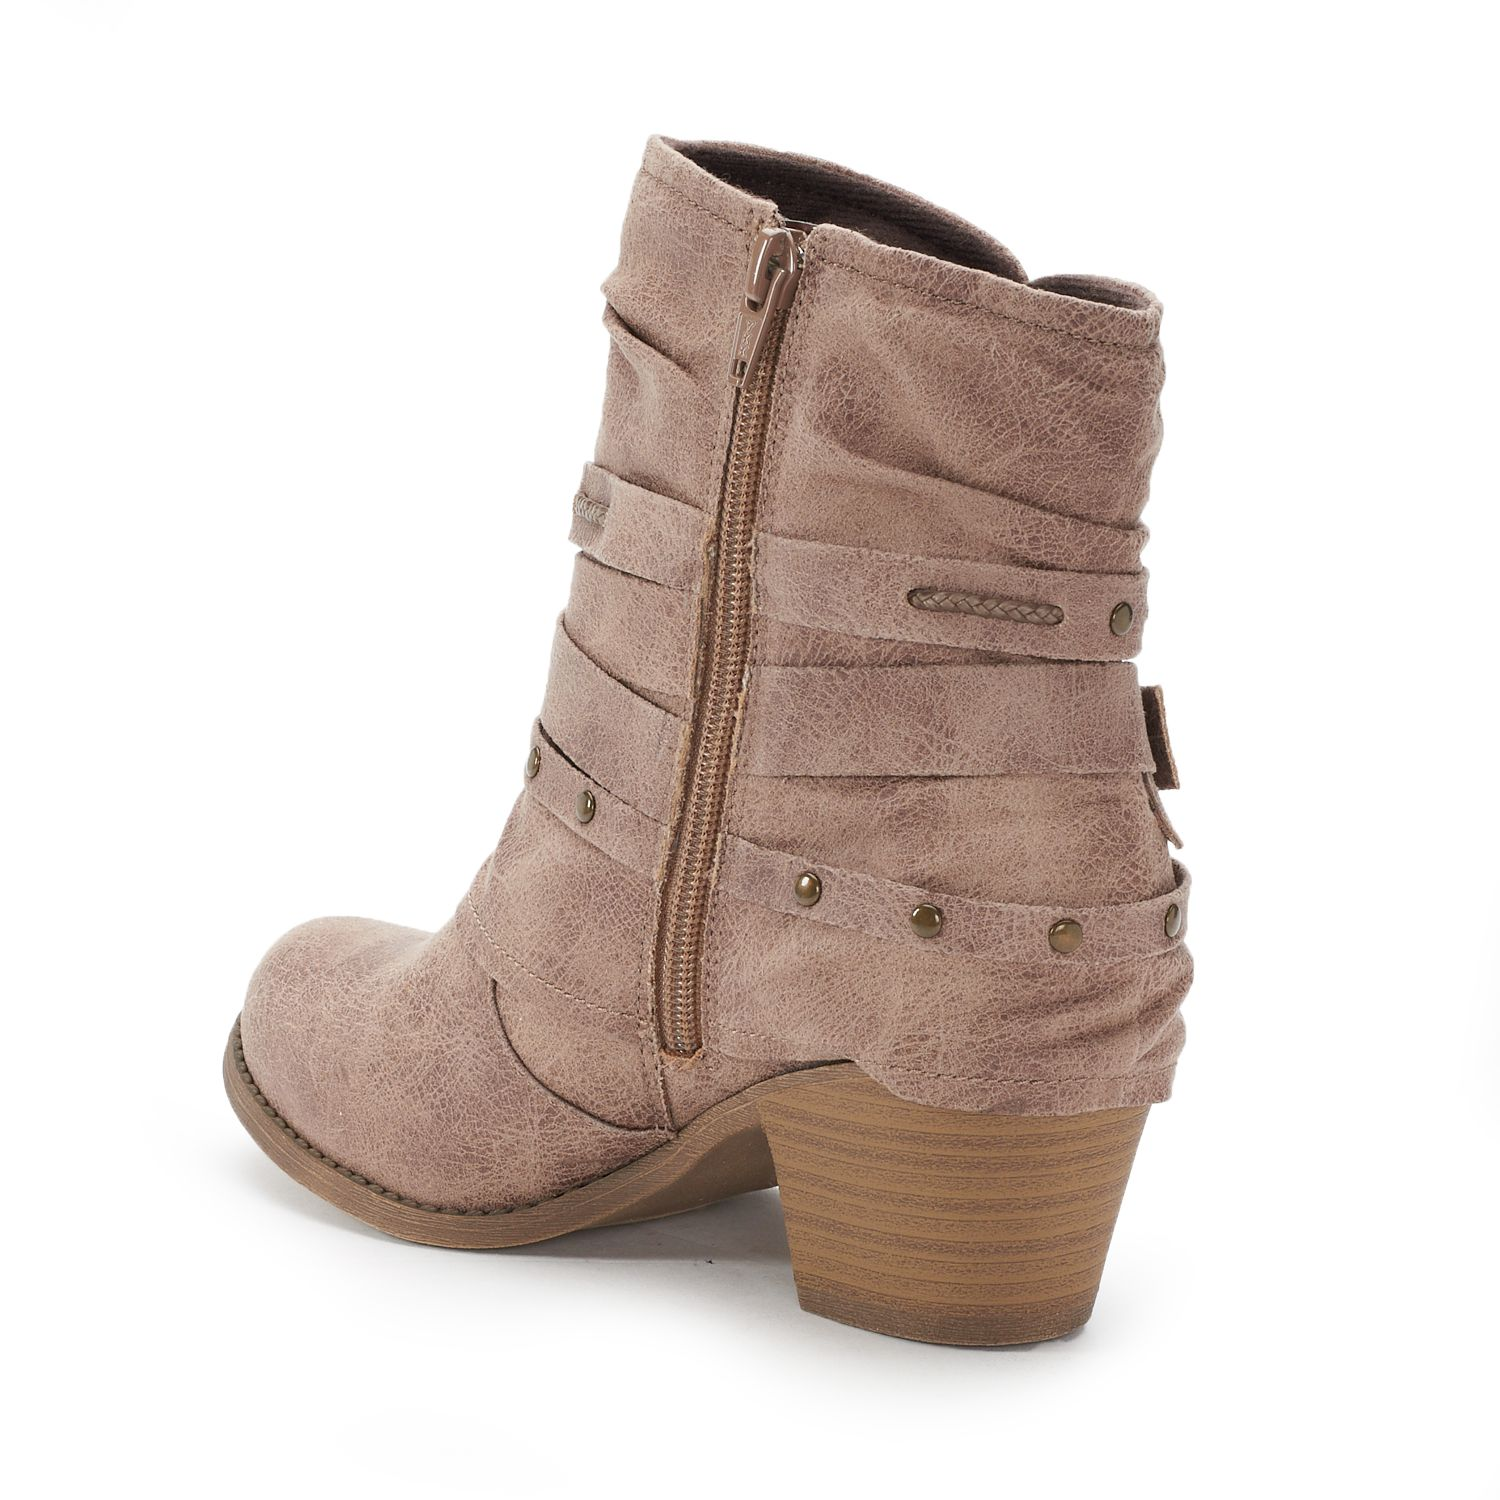 59d8788269ca Womens SO Boots - Shoes